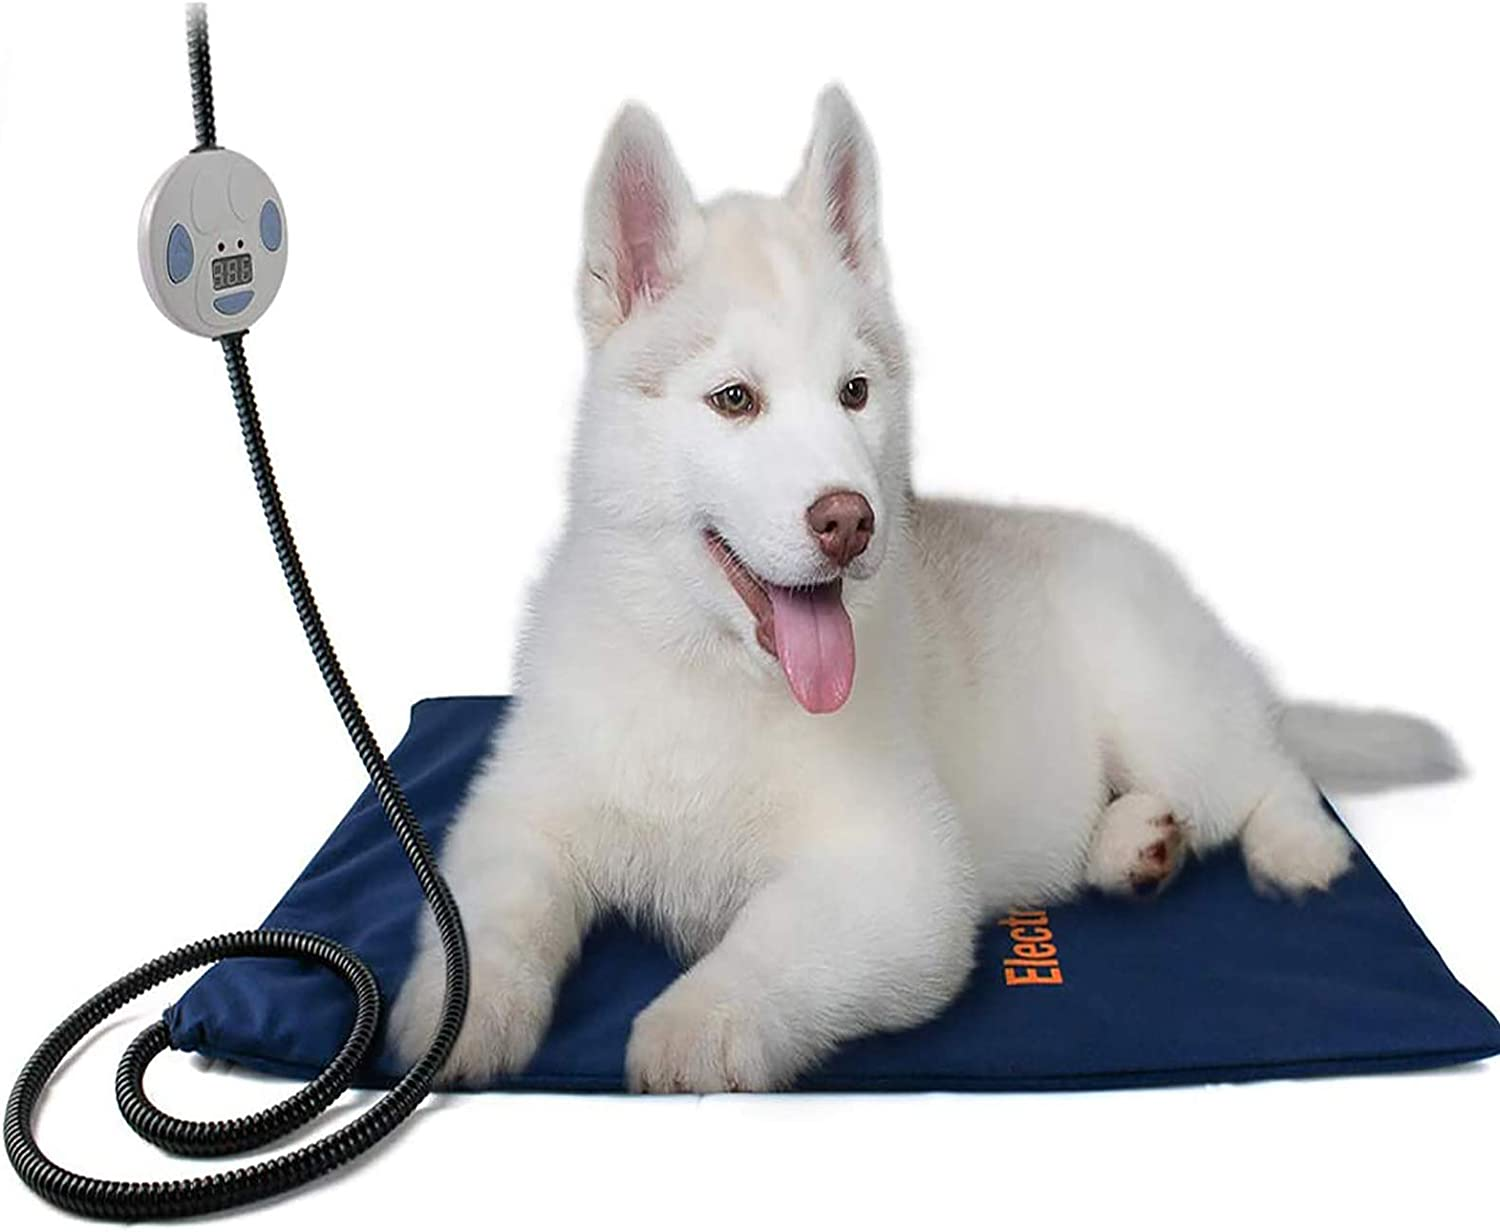 Pet Phoenix Mall Heating Pad Constant Max 76% OFF Safe Electric Washab Heated Mat